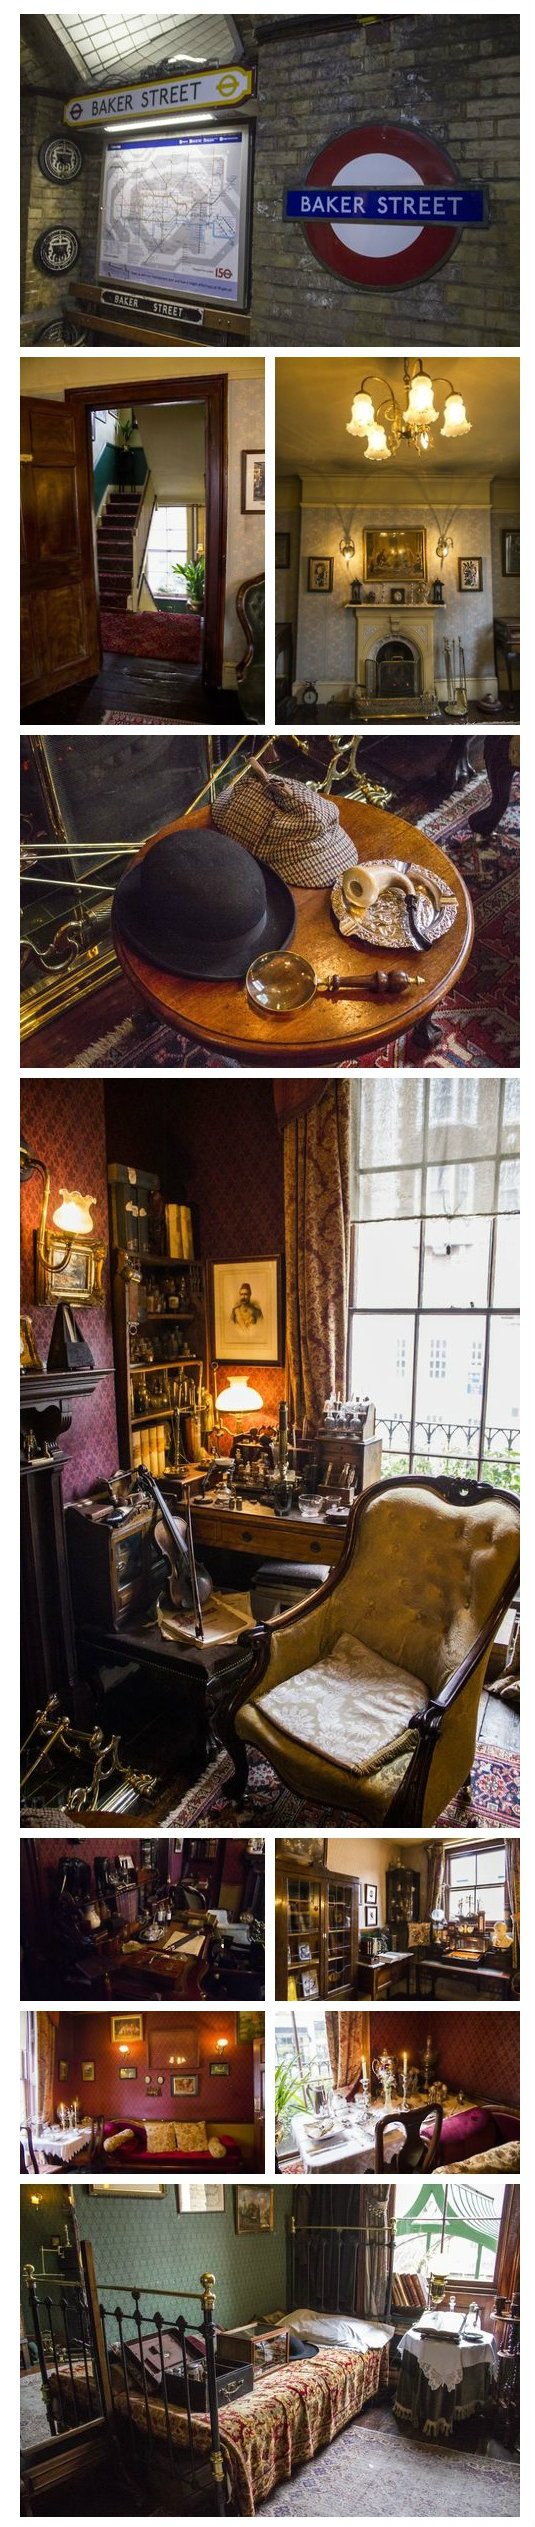 Living room victorian pinterest baker street sofas and 221b - Museums